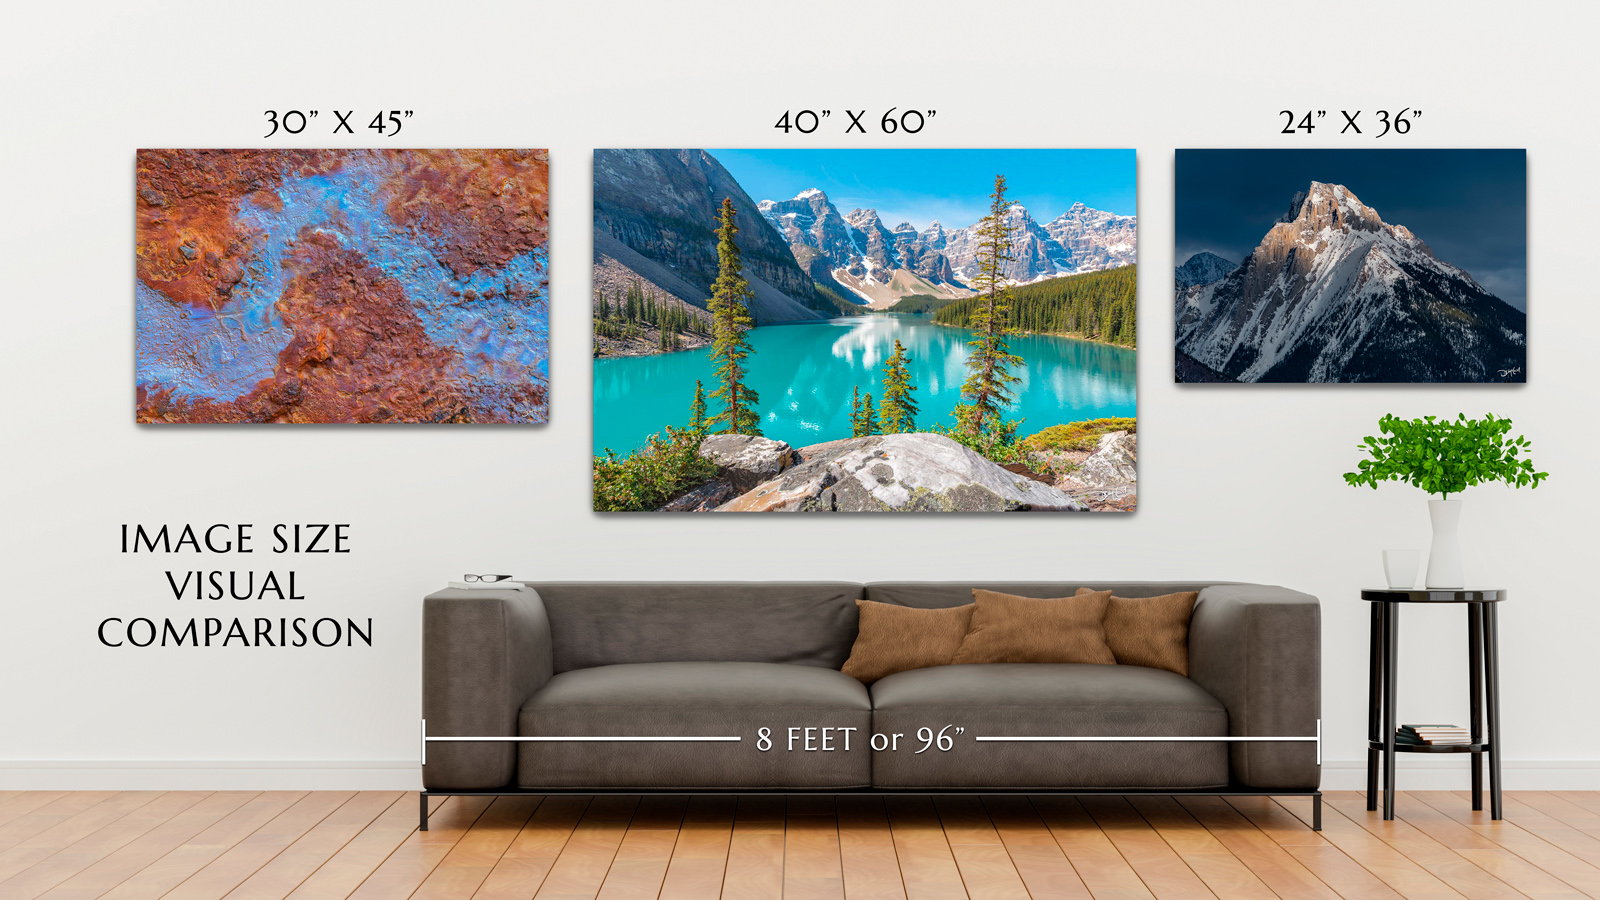 Diagram with measurements of three different sized photos hanging over sofa to visualize size comparison before purchasing.